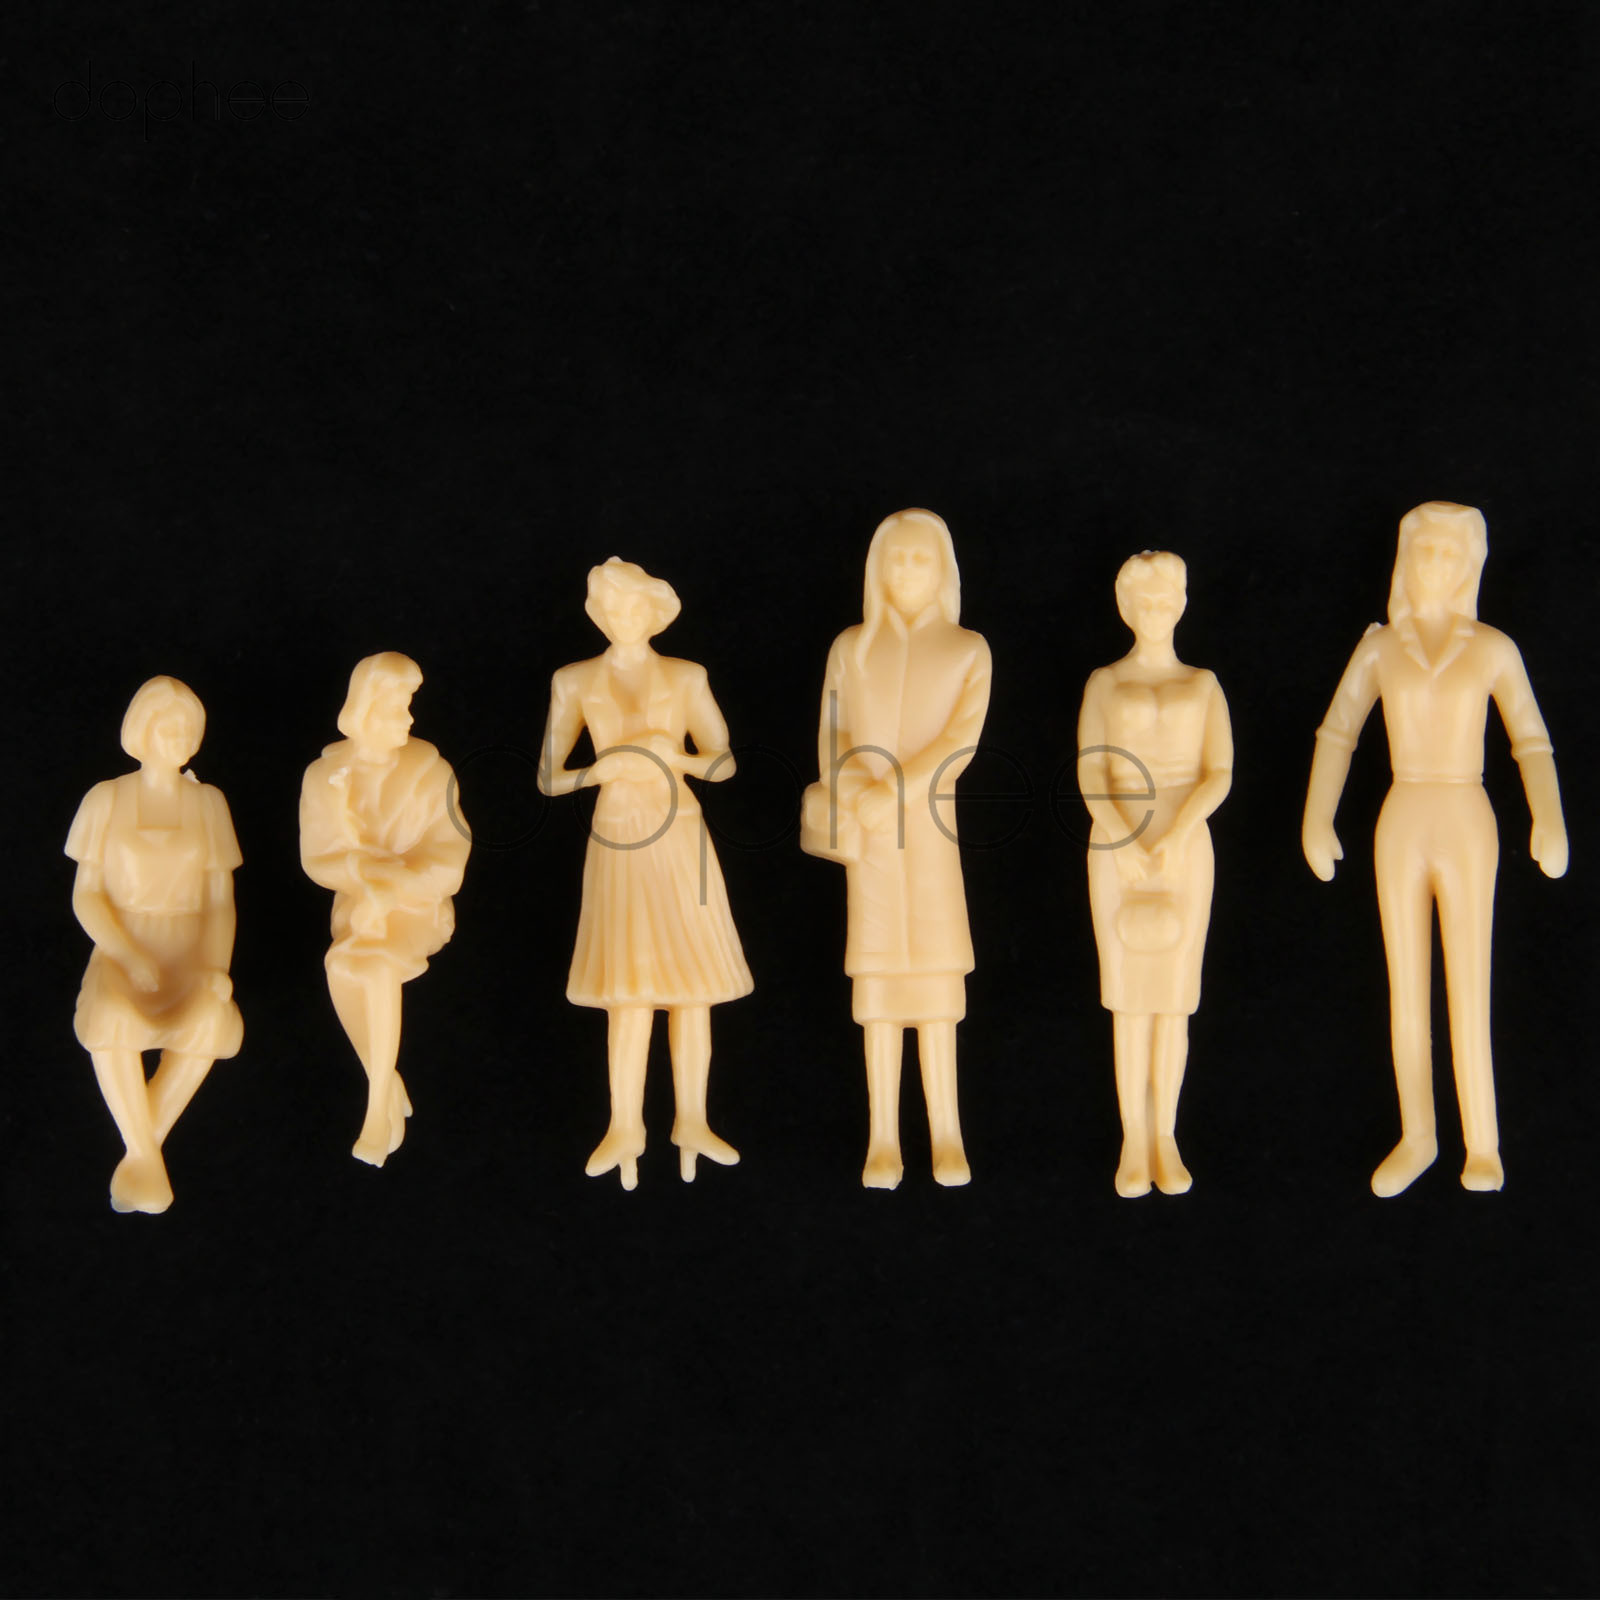 US $1 93 27% OFF|dophee 20pcs miniature Skin color Model People figures  Architectural scale HO 1:30 1:42 1:50 ABS plastic peoples 65mm 40mm 36mm-in